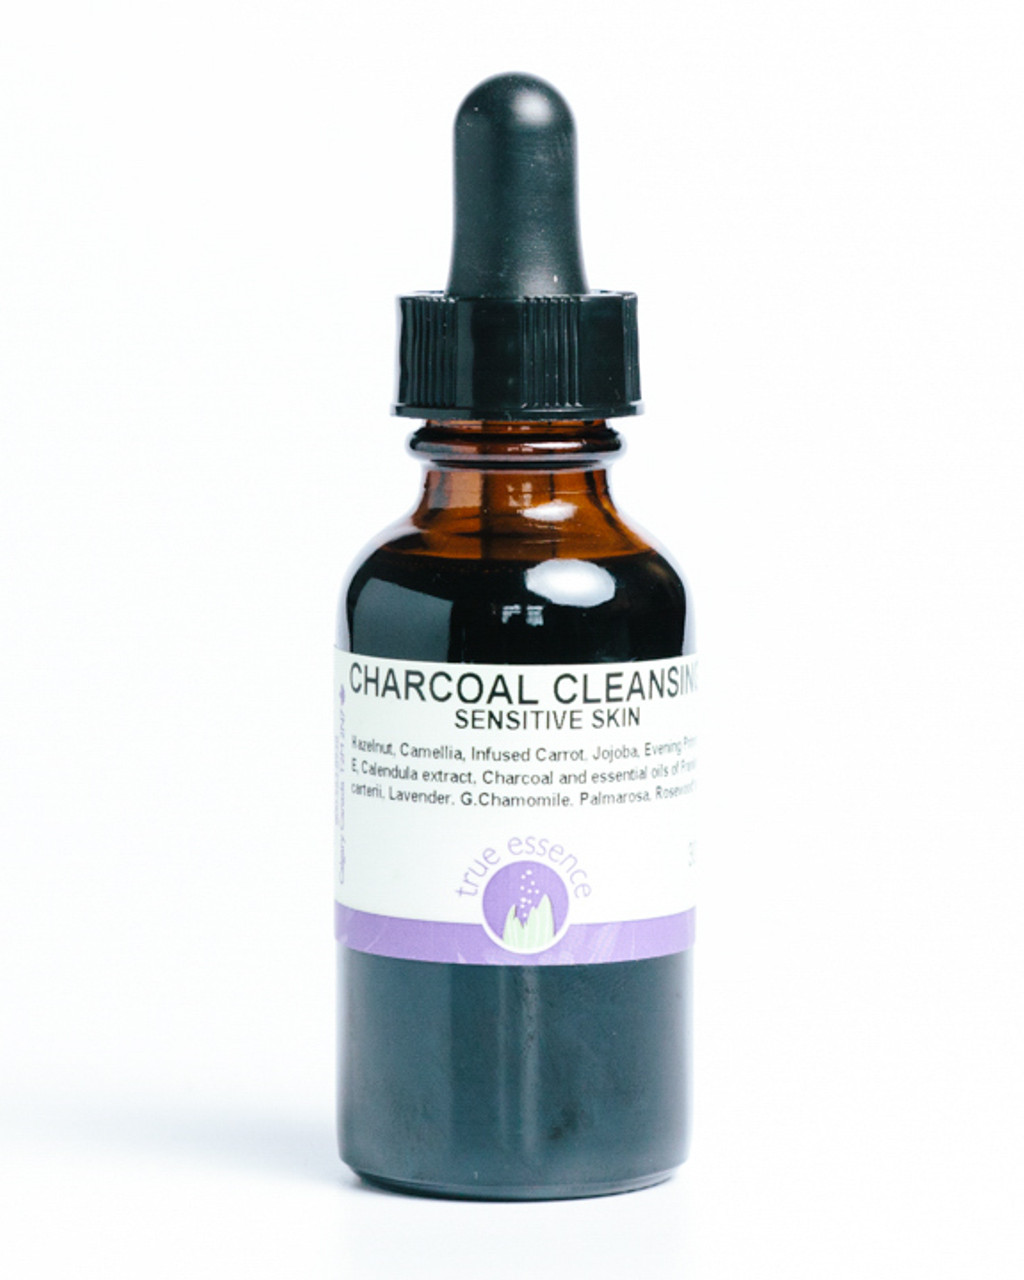 CHARCOAL CLEANSING OIL - SENSITIVE SKIN